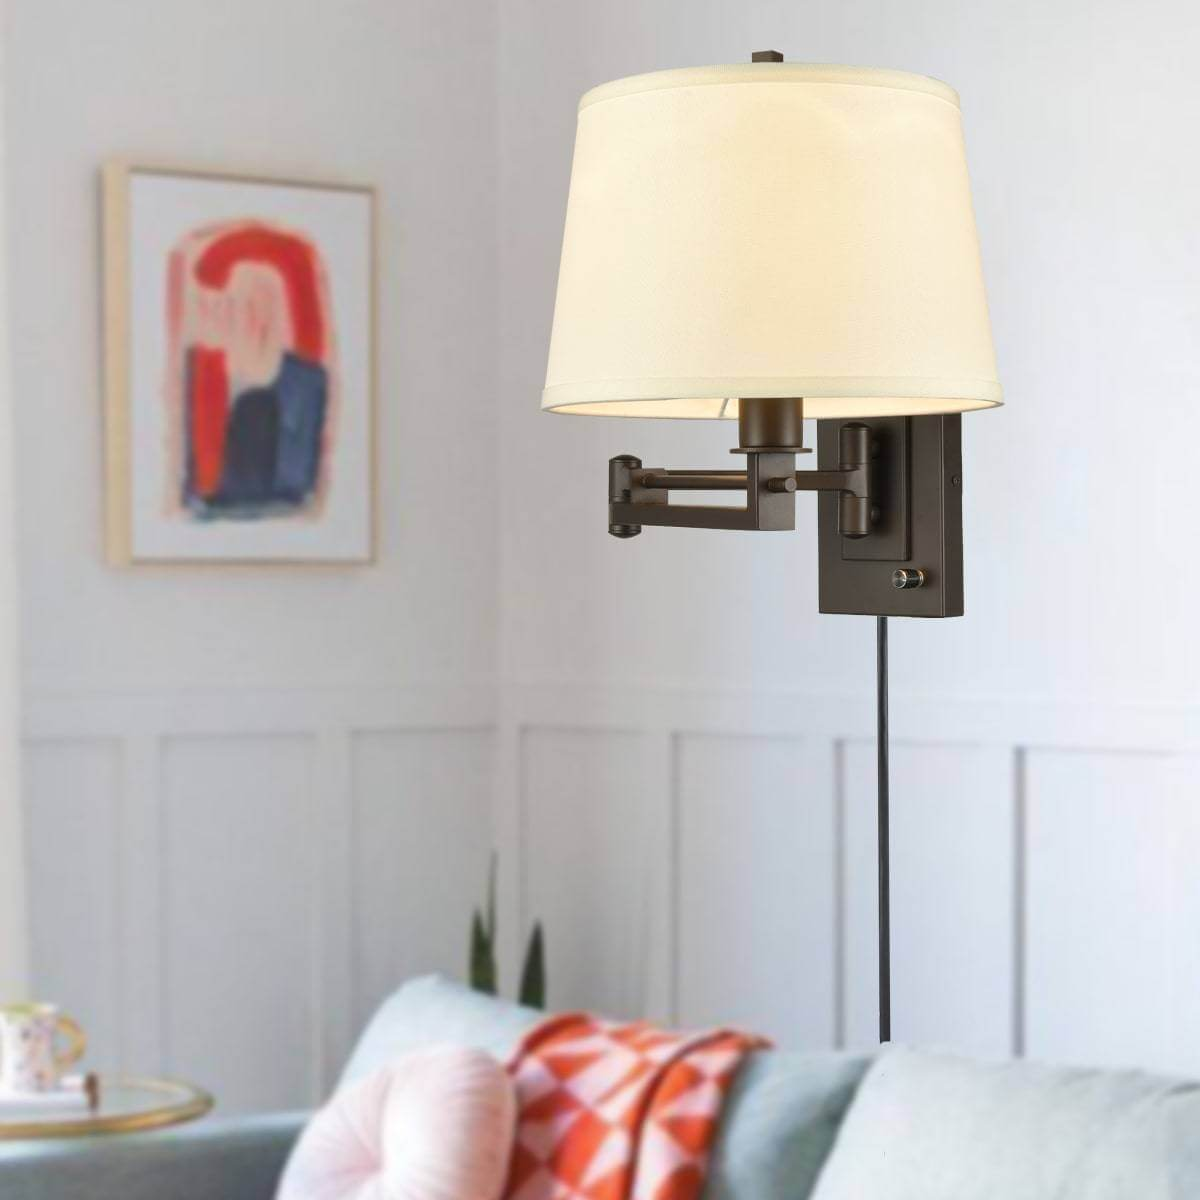 Swing Arm Wall Lamps Fabric Hardwired & Plug in Wall Lights